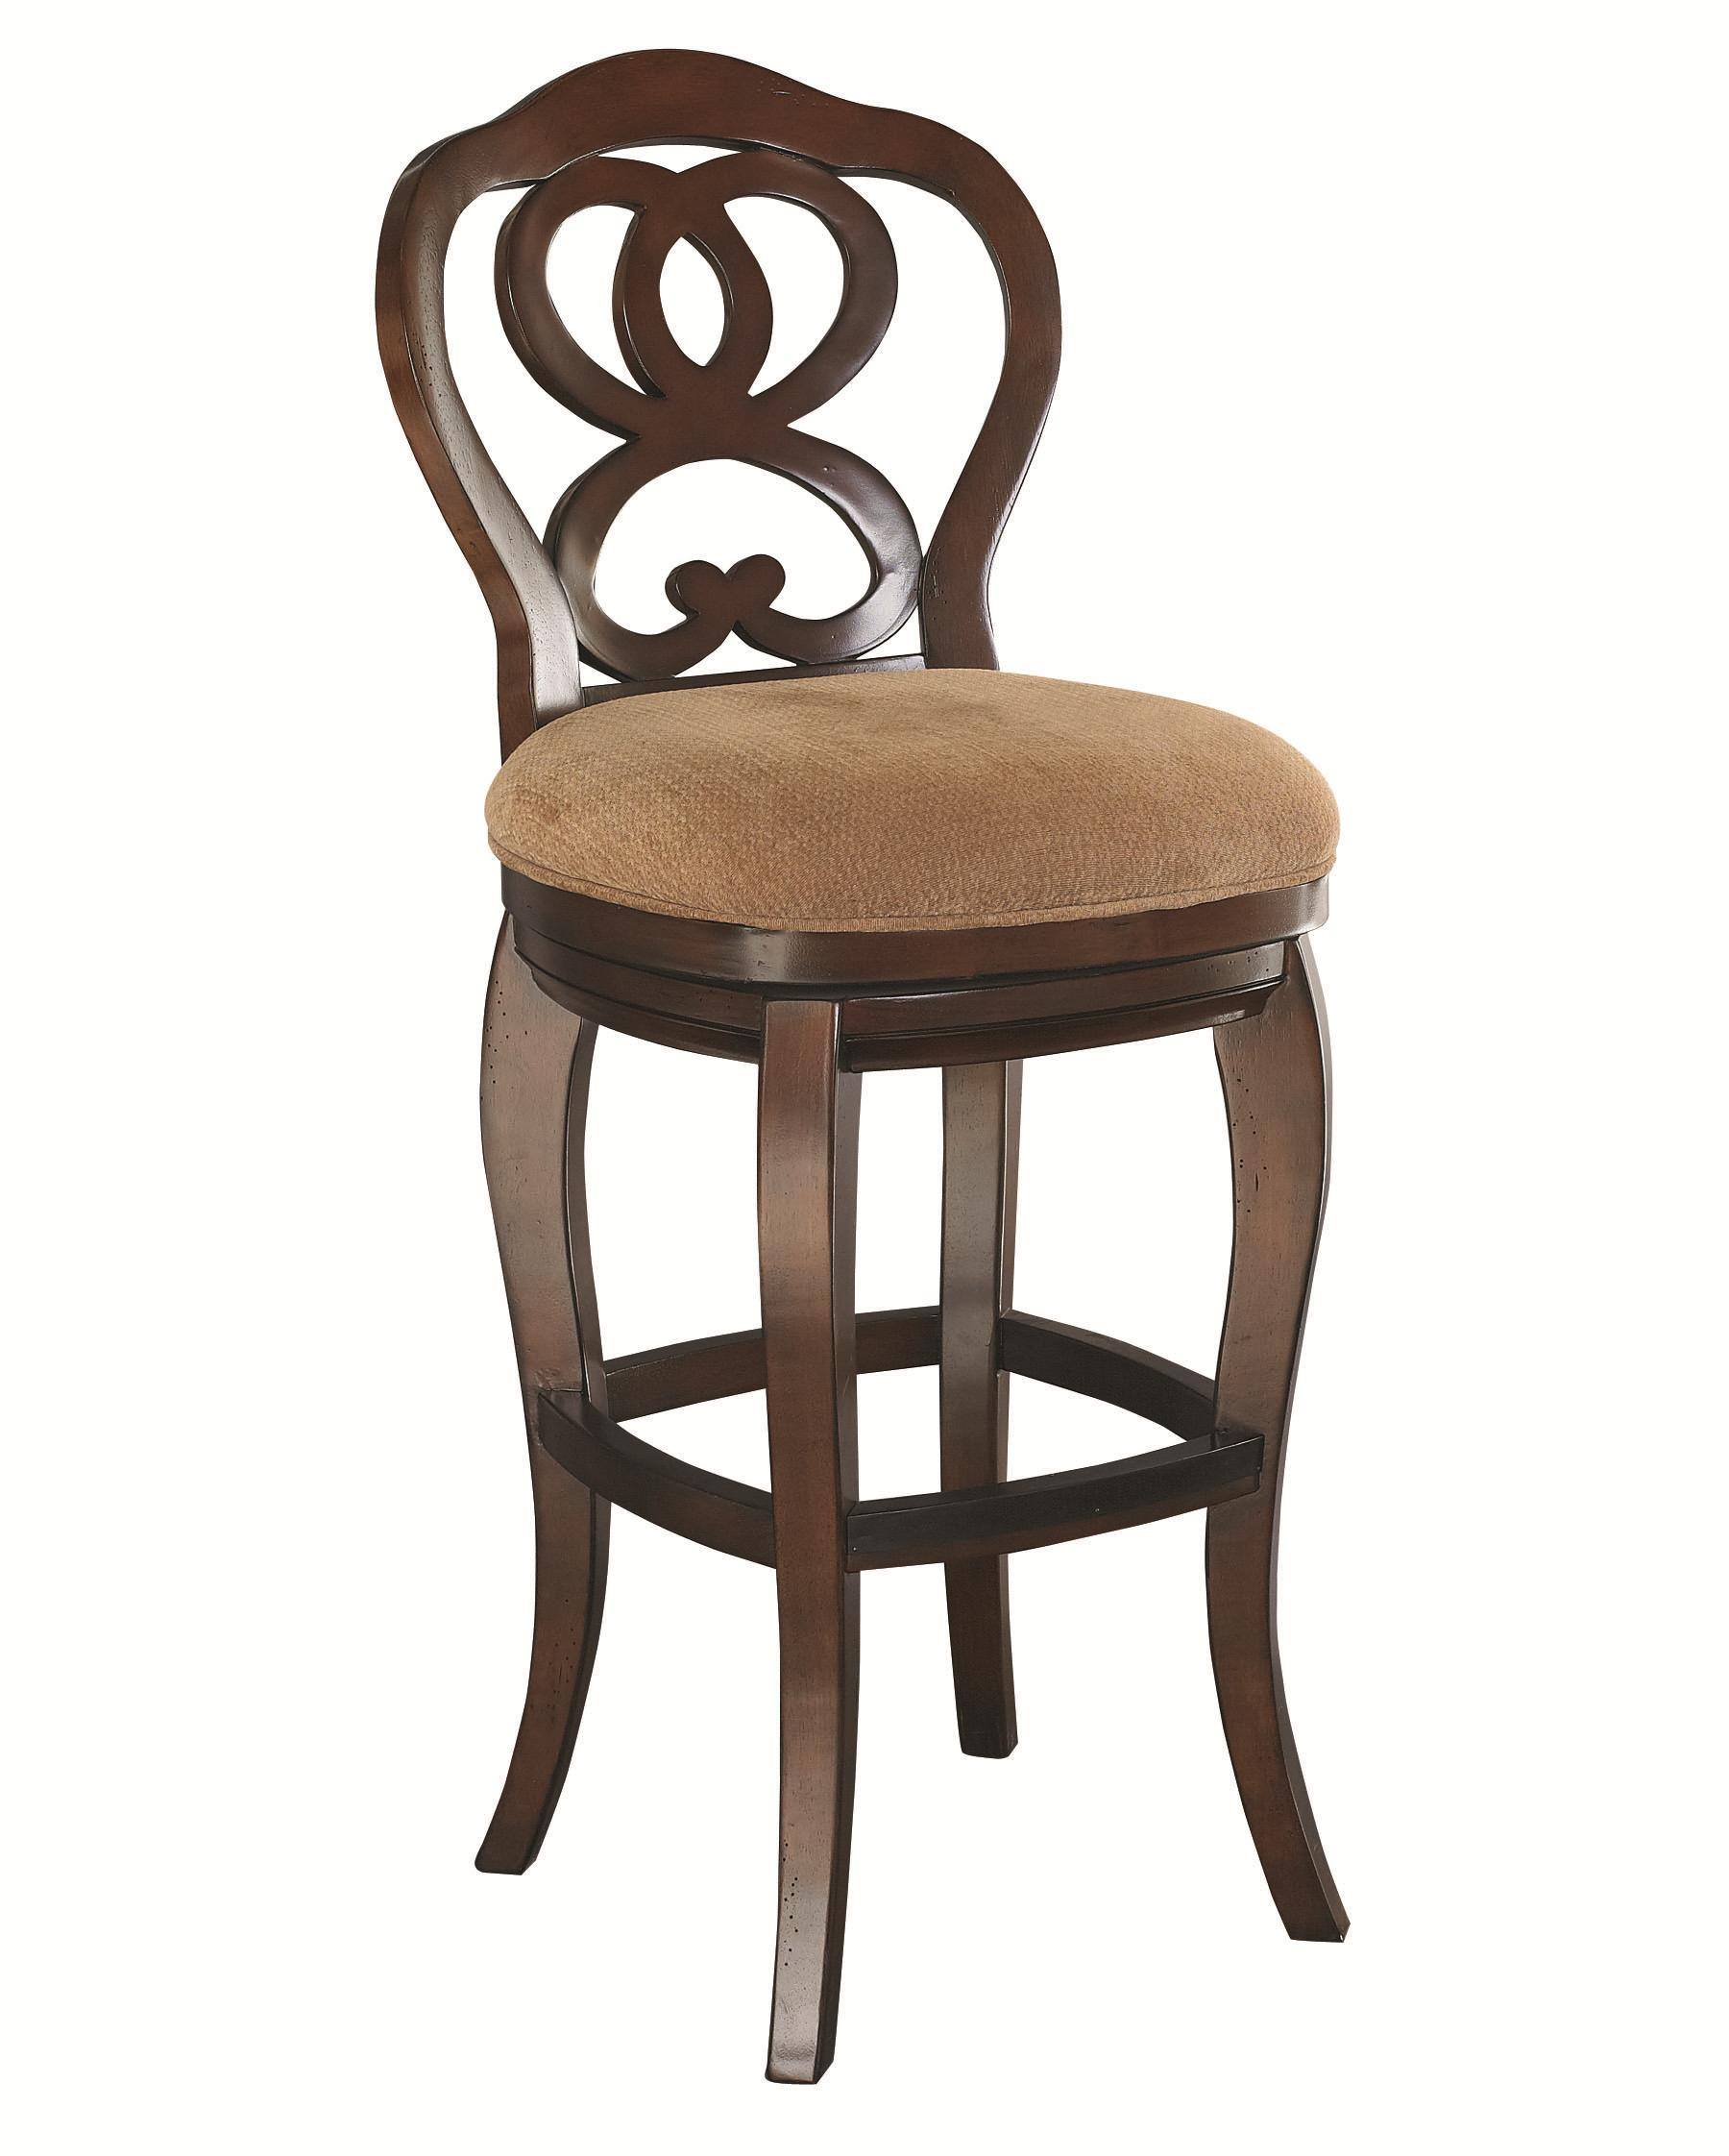 Hammary Hidden Treasures Bar Stool - Item Number: T73185-00